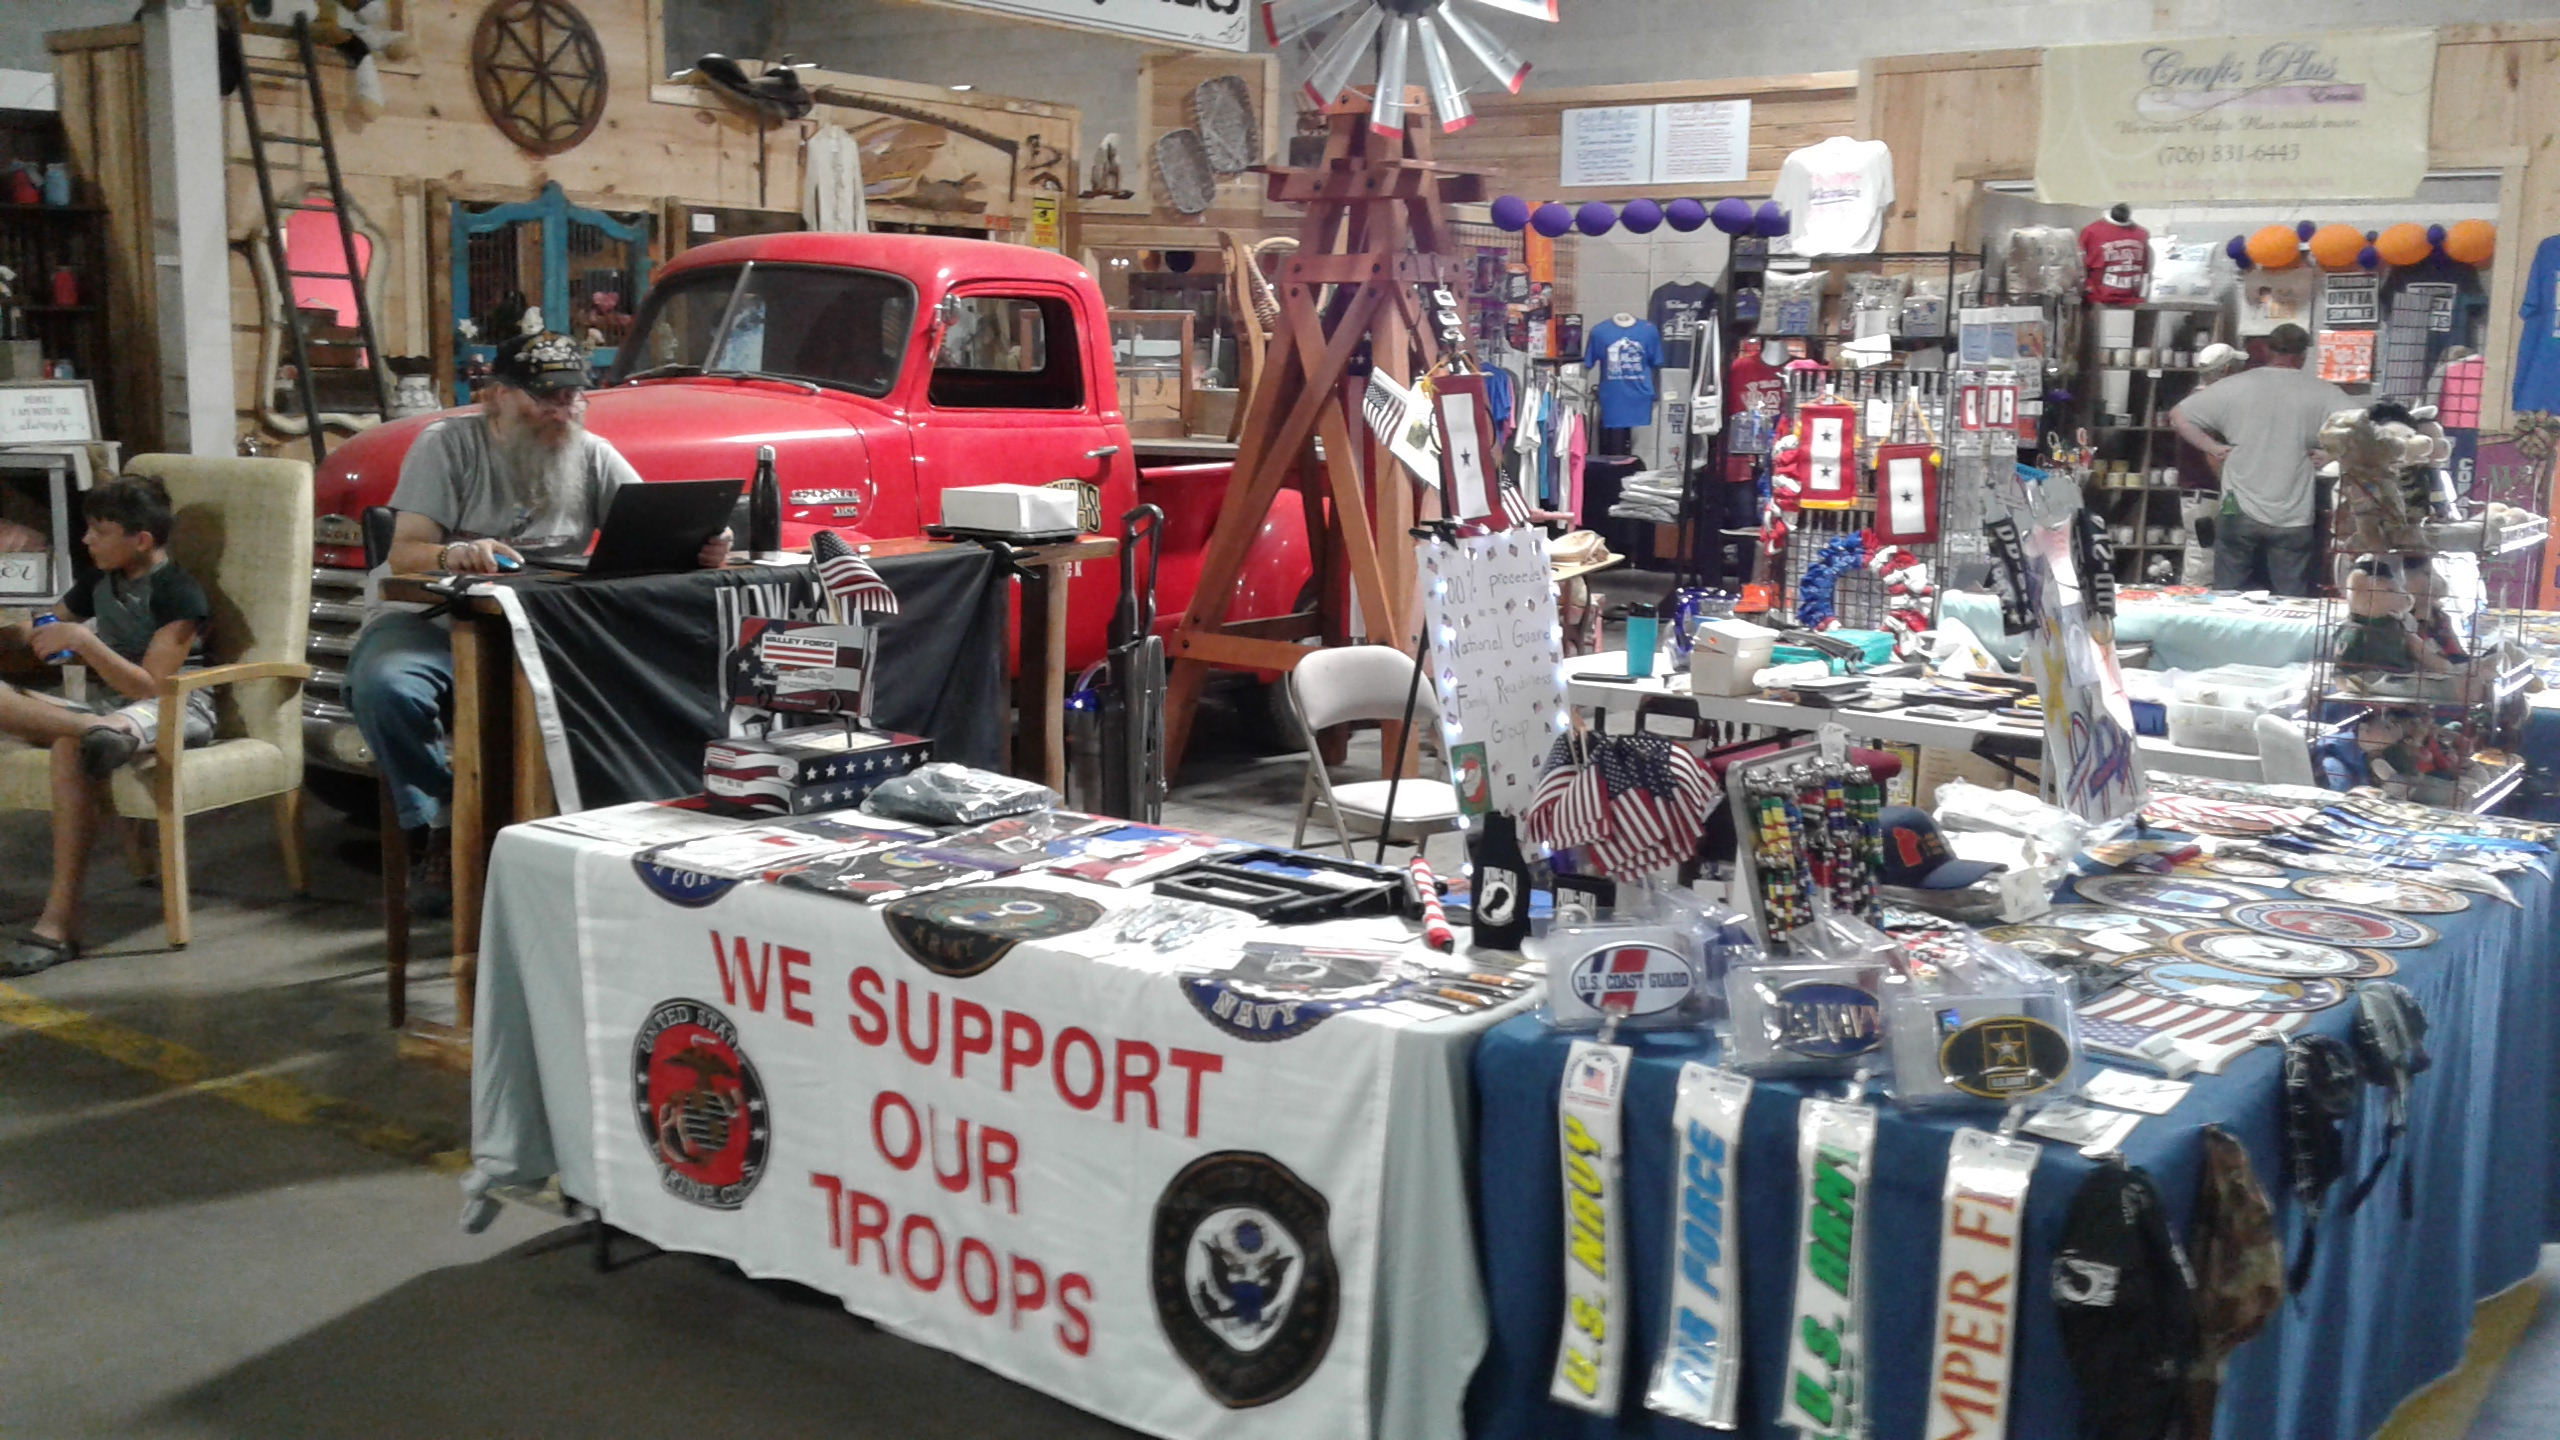 Support Our Troops – Next to Stage